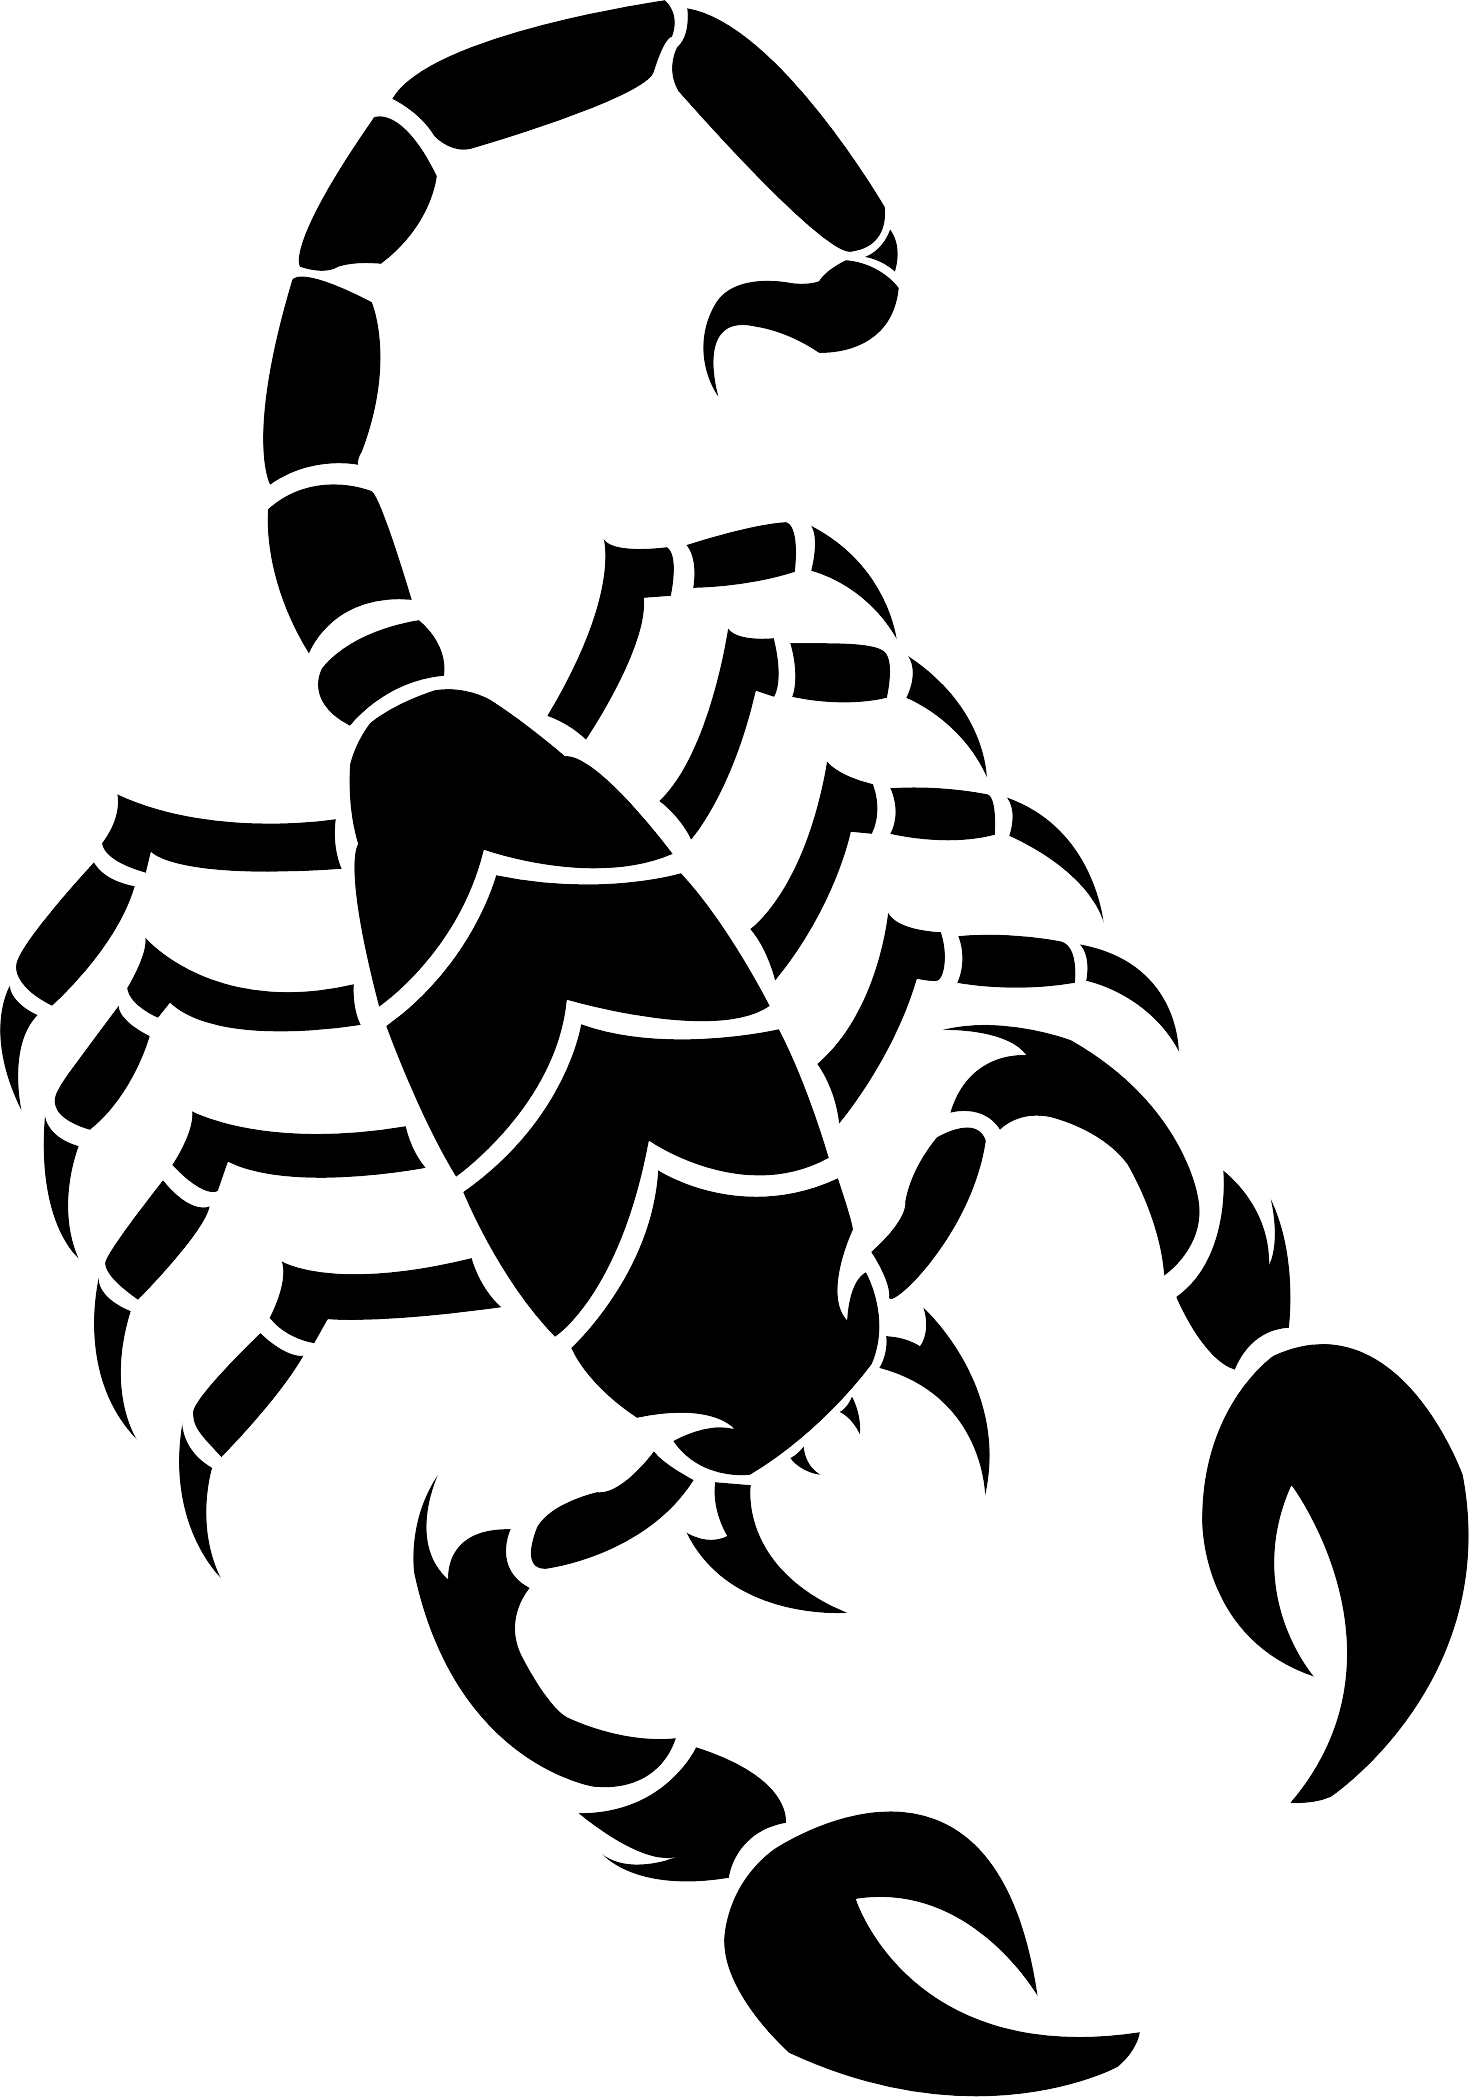 Scorpion png image purepng. Crabs clipart drawn